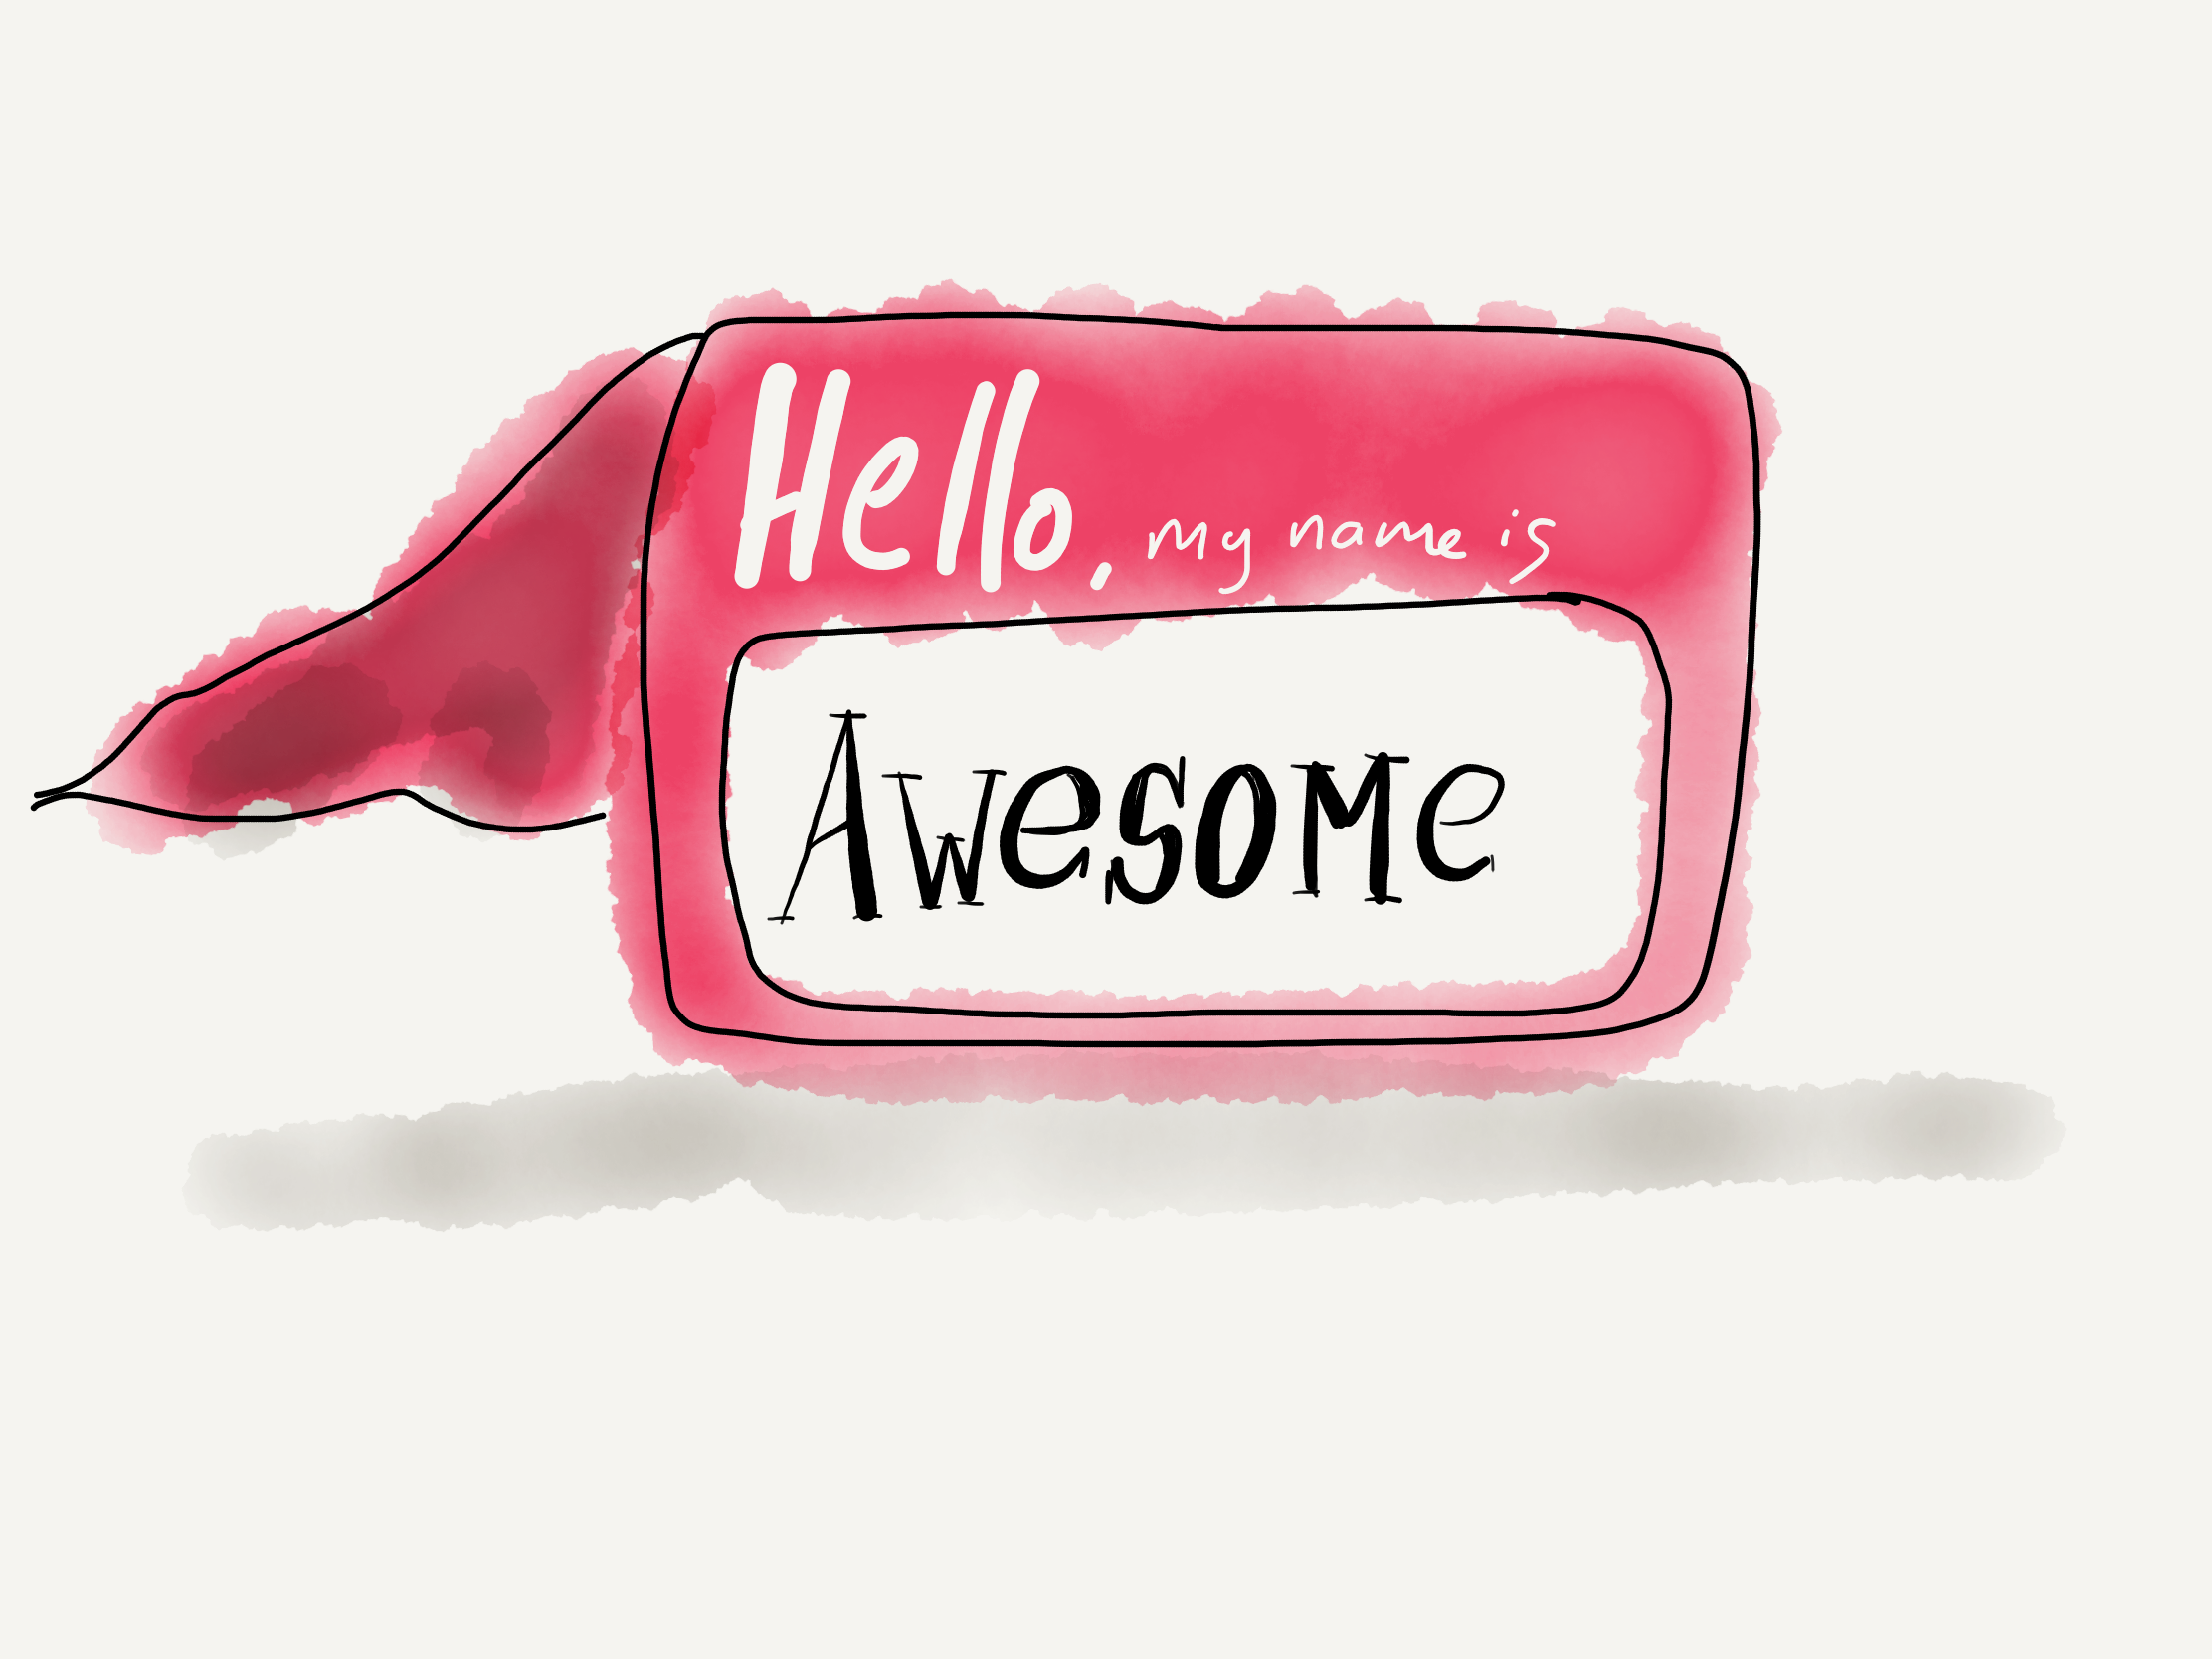 Hello my name is awesome book summary hero image